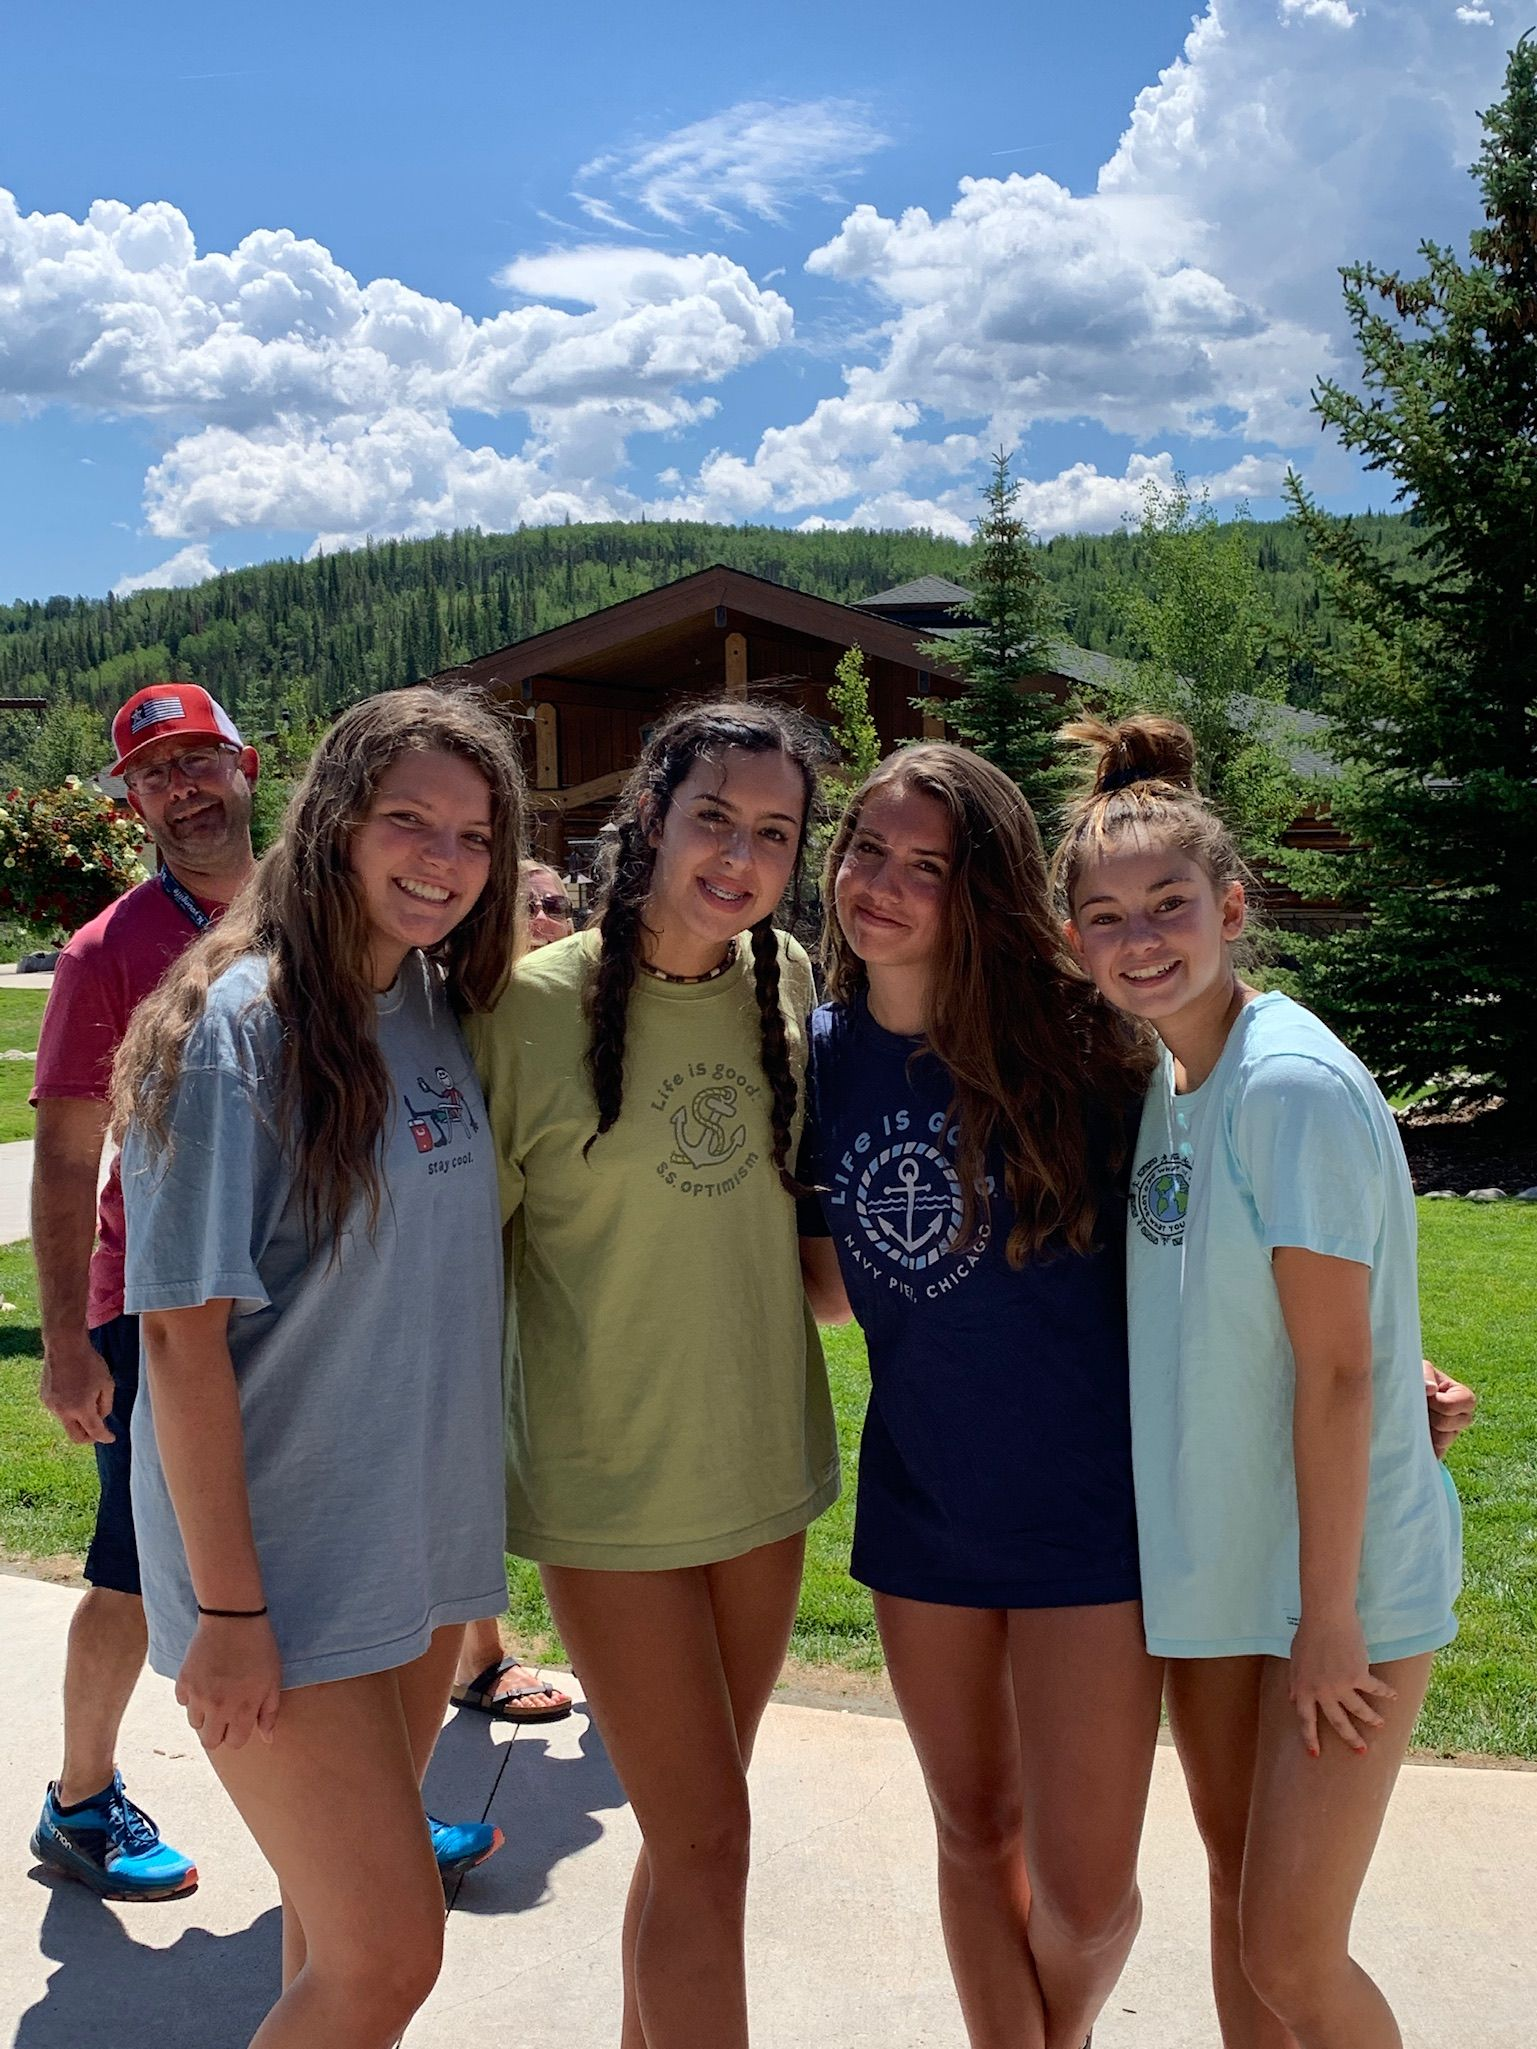 Pin by kaleigh on YL | Young life camp, Christian camp